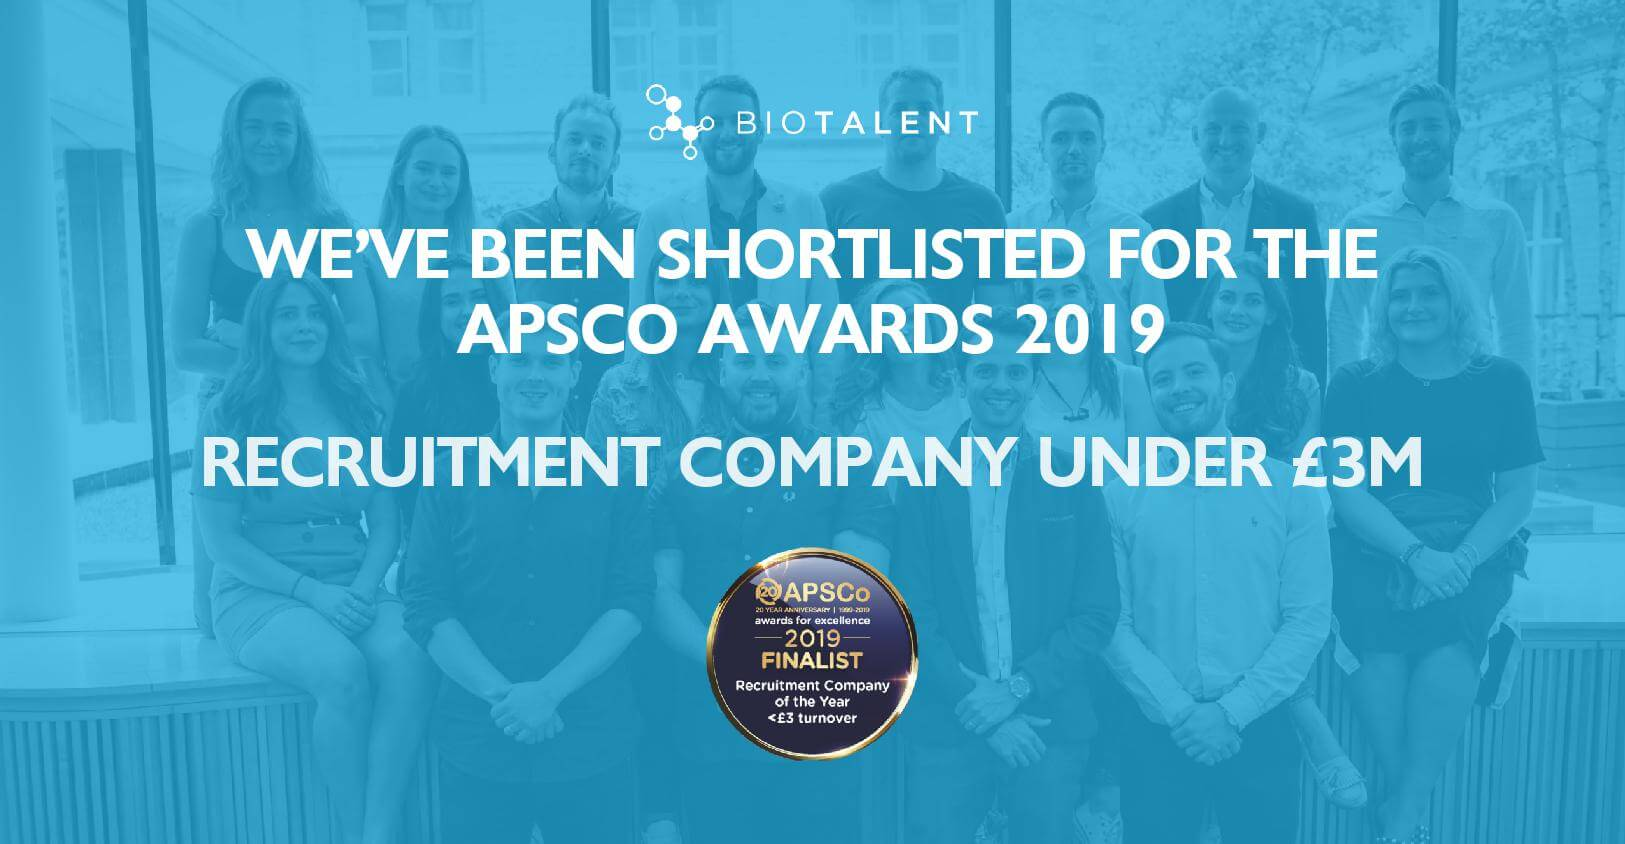 APSCo Awards 2019 - we've been shortlisted!